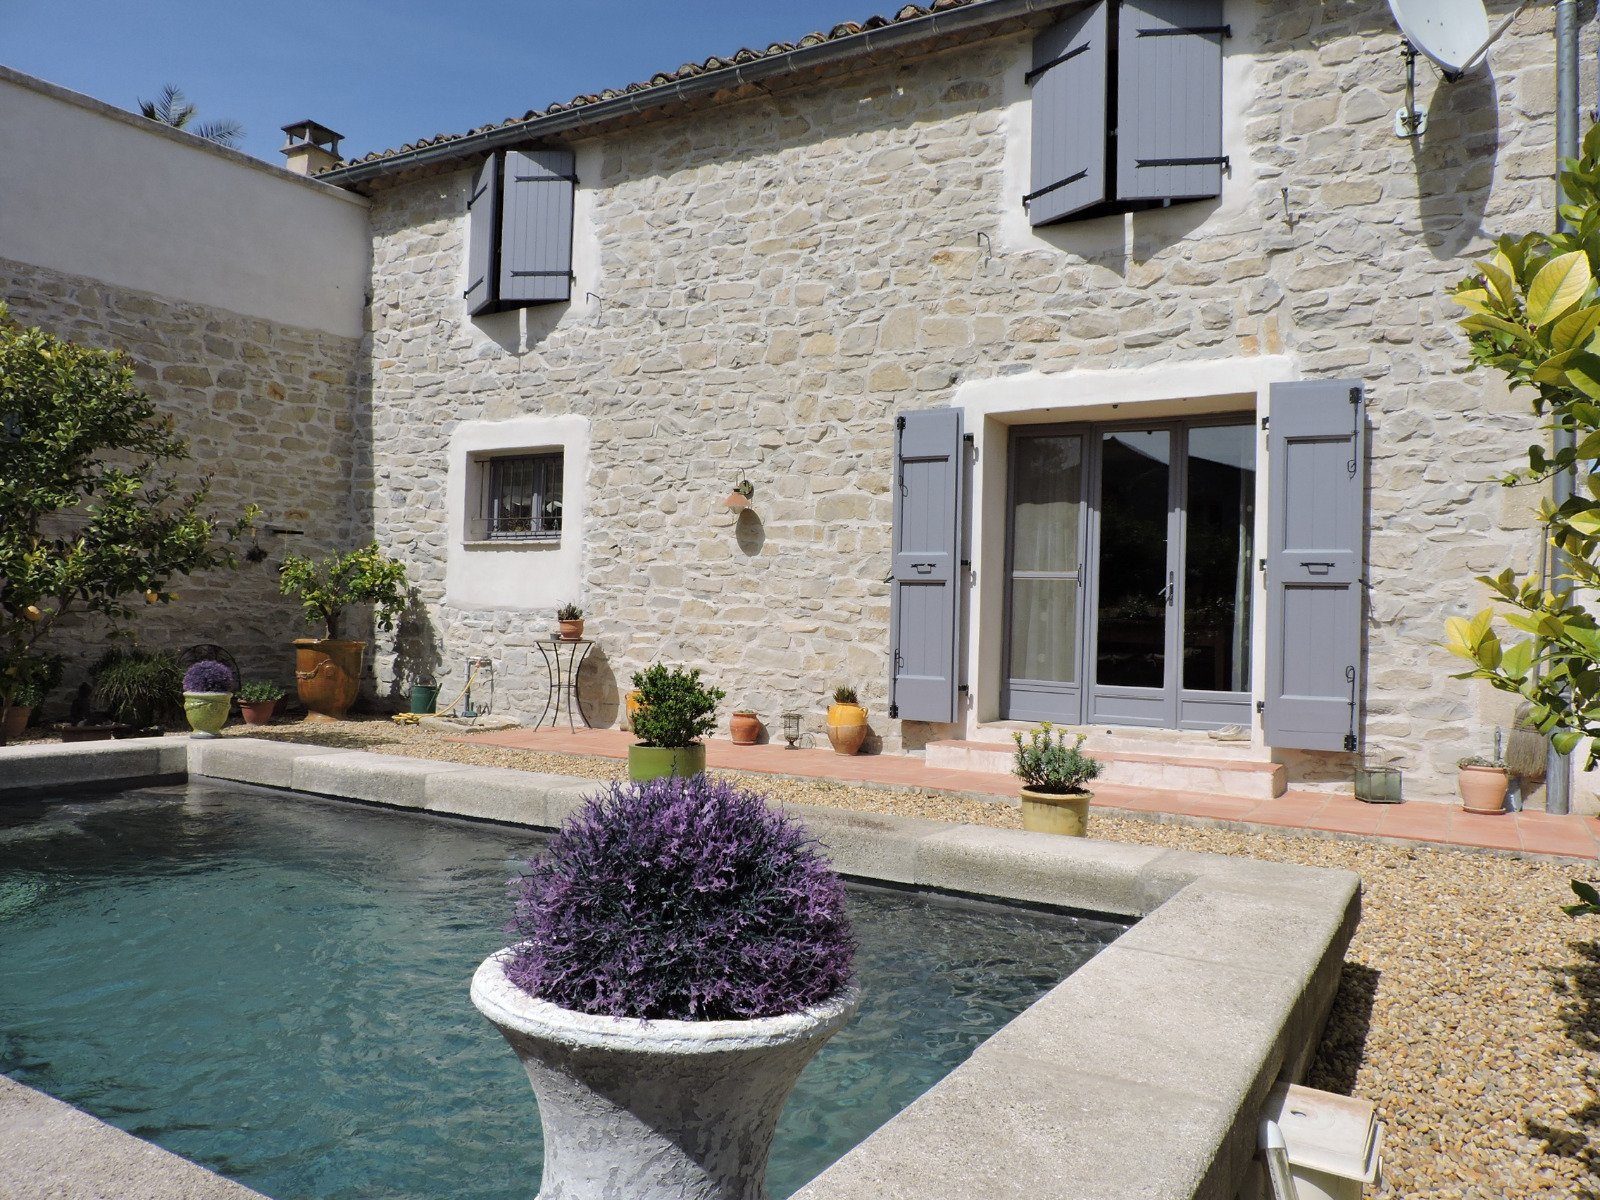 Vente maison gard sommieres sommi res 30250 for Maison sommieres